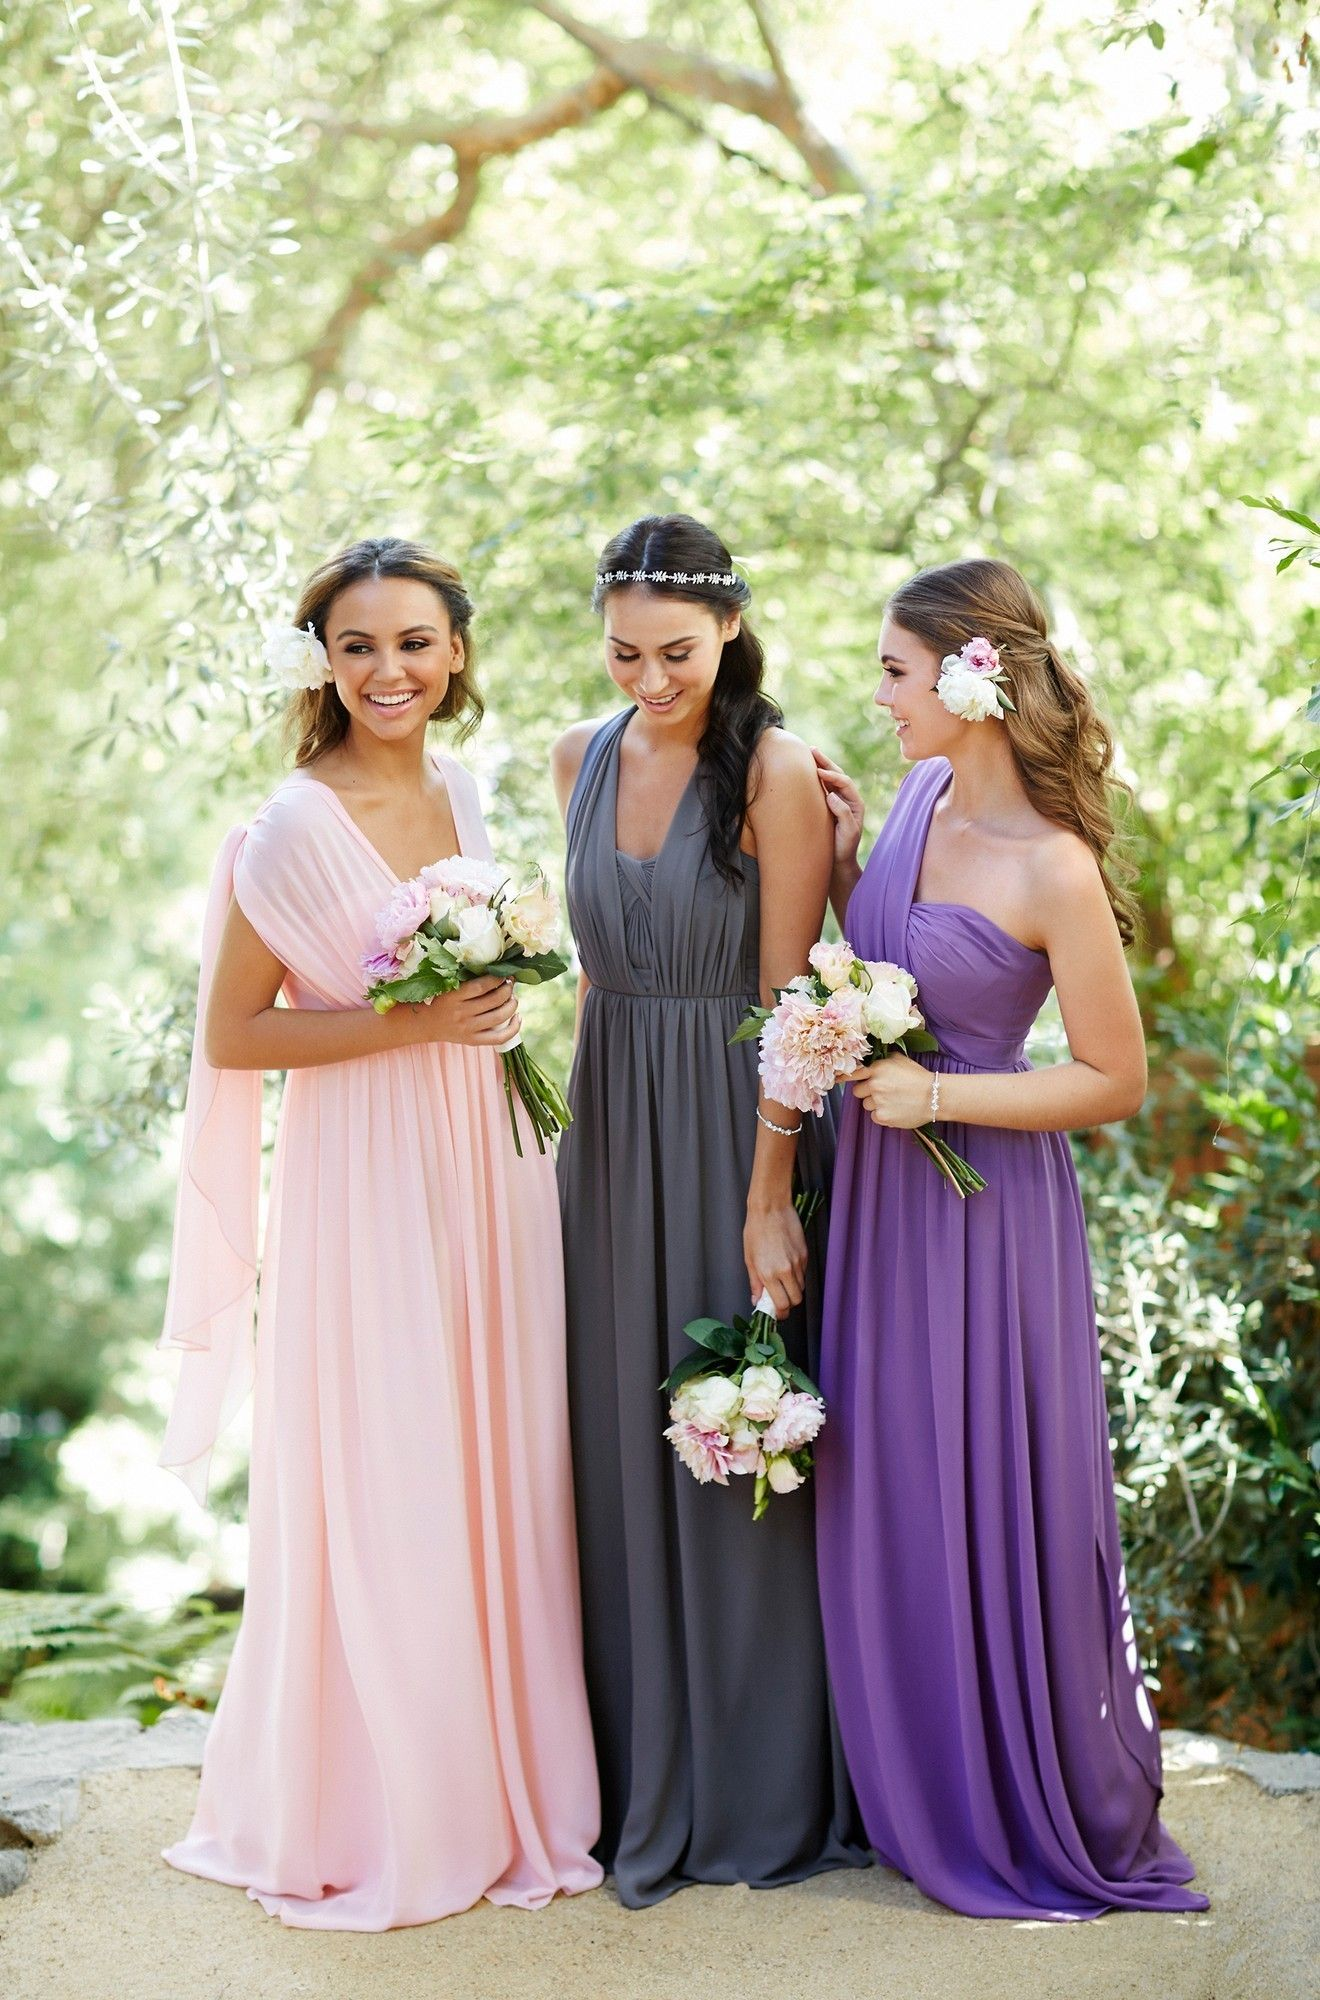 Jenny yoo aidan wedding and wedding dreaming of spring bridesmaid vibes rent the convertible aidan dresses by jenny yoo with vow ombrellifo Choice Image